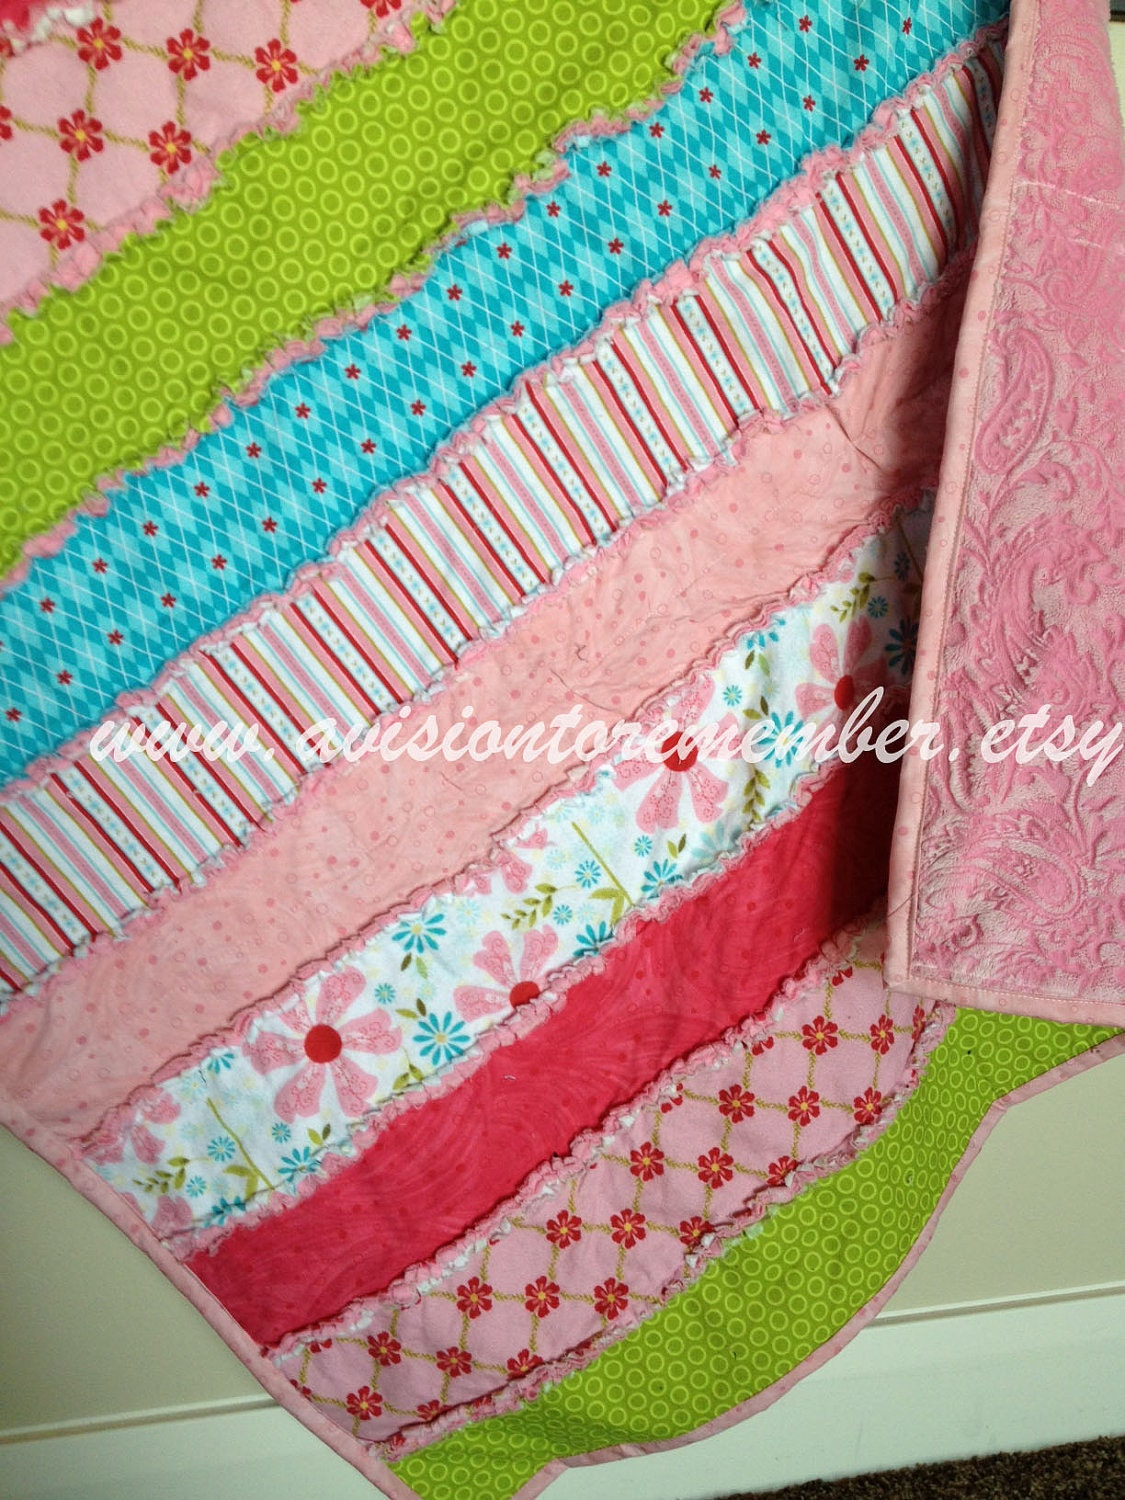 Strip rag quilt sewing patterns simple quilt pattern easy zoom jeuxipadfo Gallery